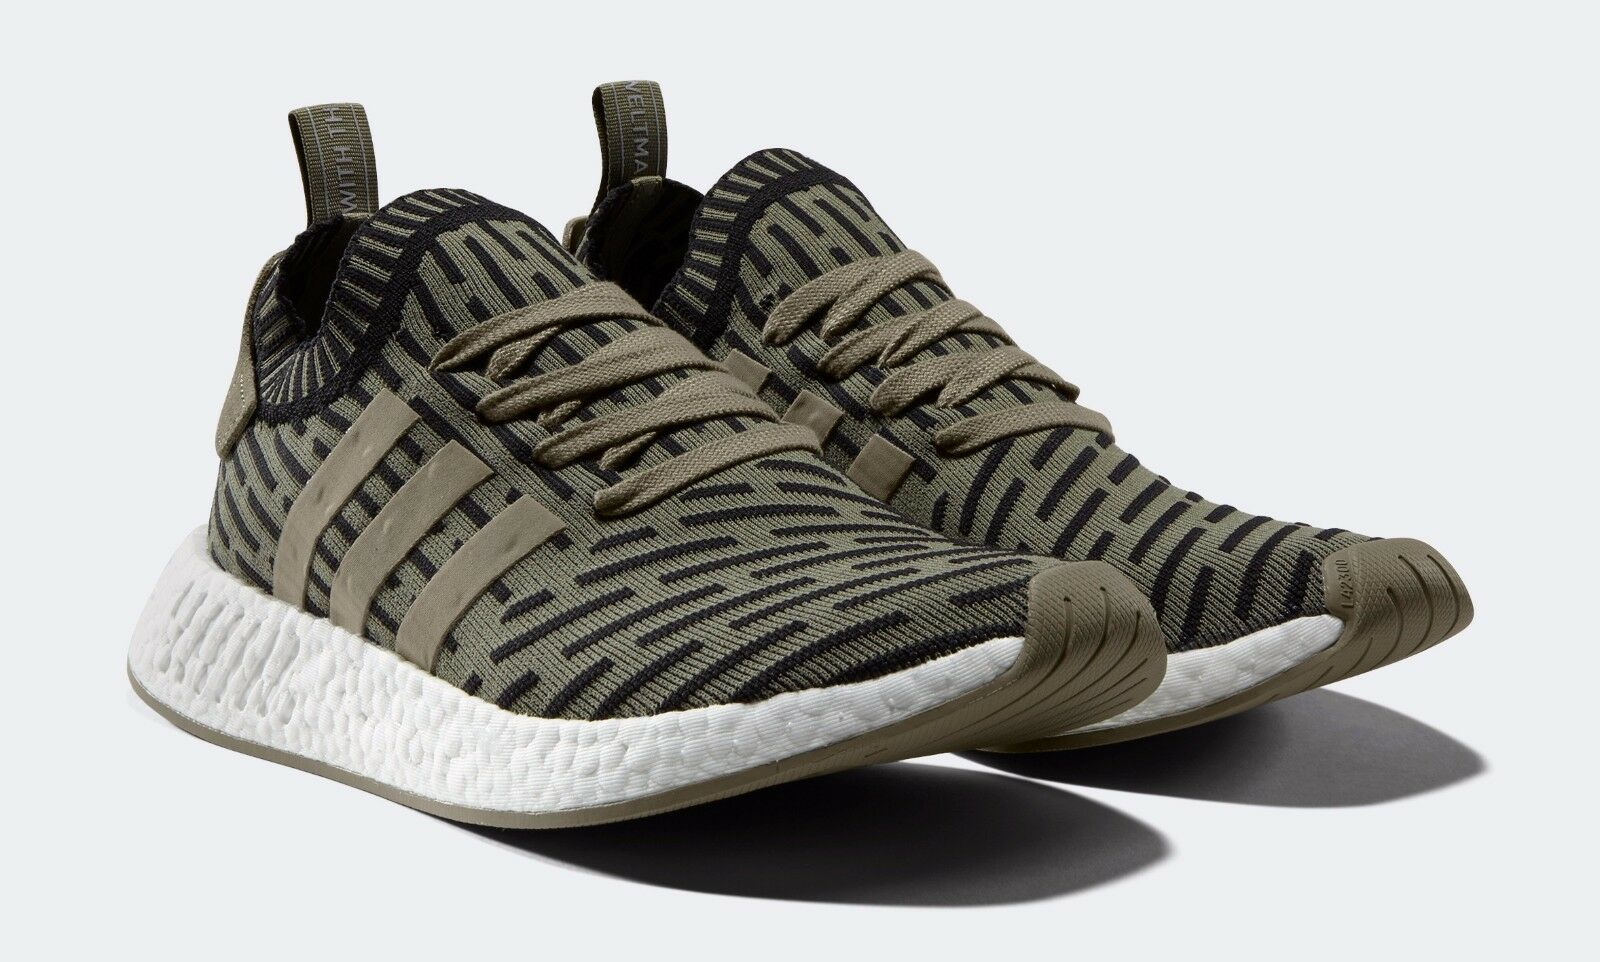 ADIDAS NMD R2 BA7198 GREEN LIMITED EDITION SOLD OUT US men Size 9.5